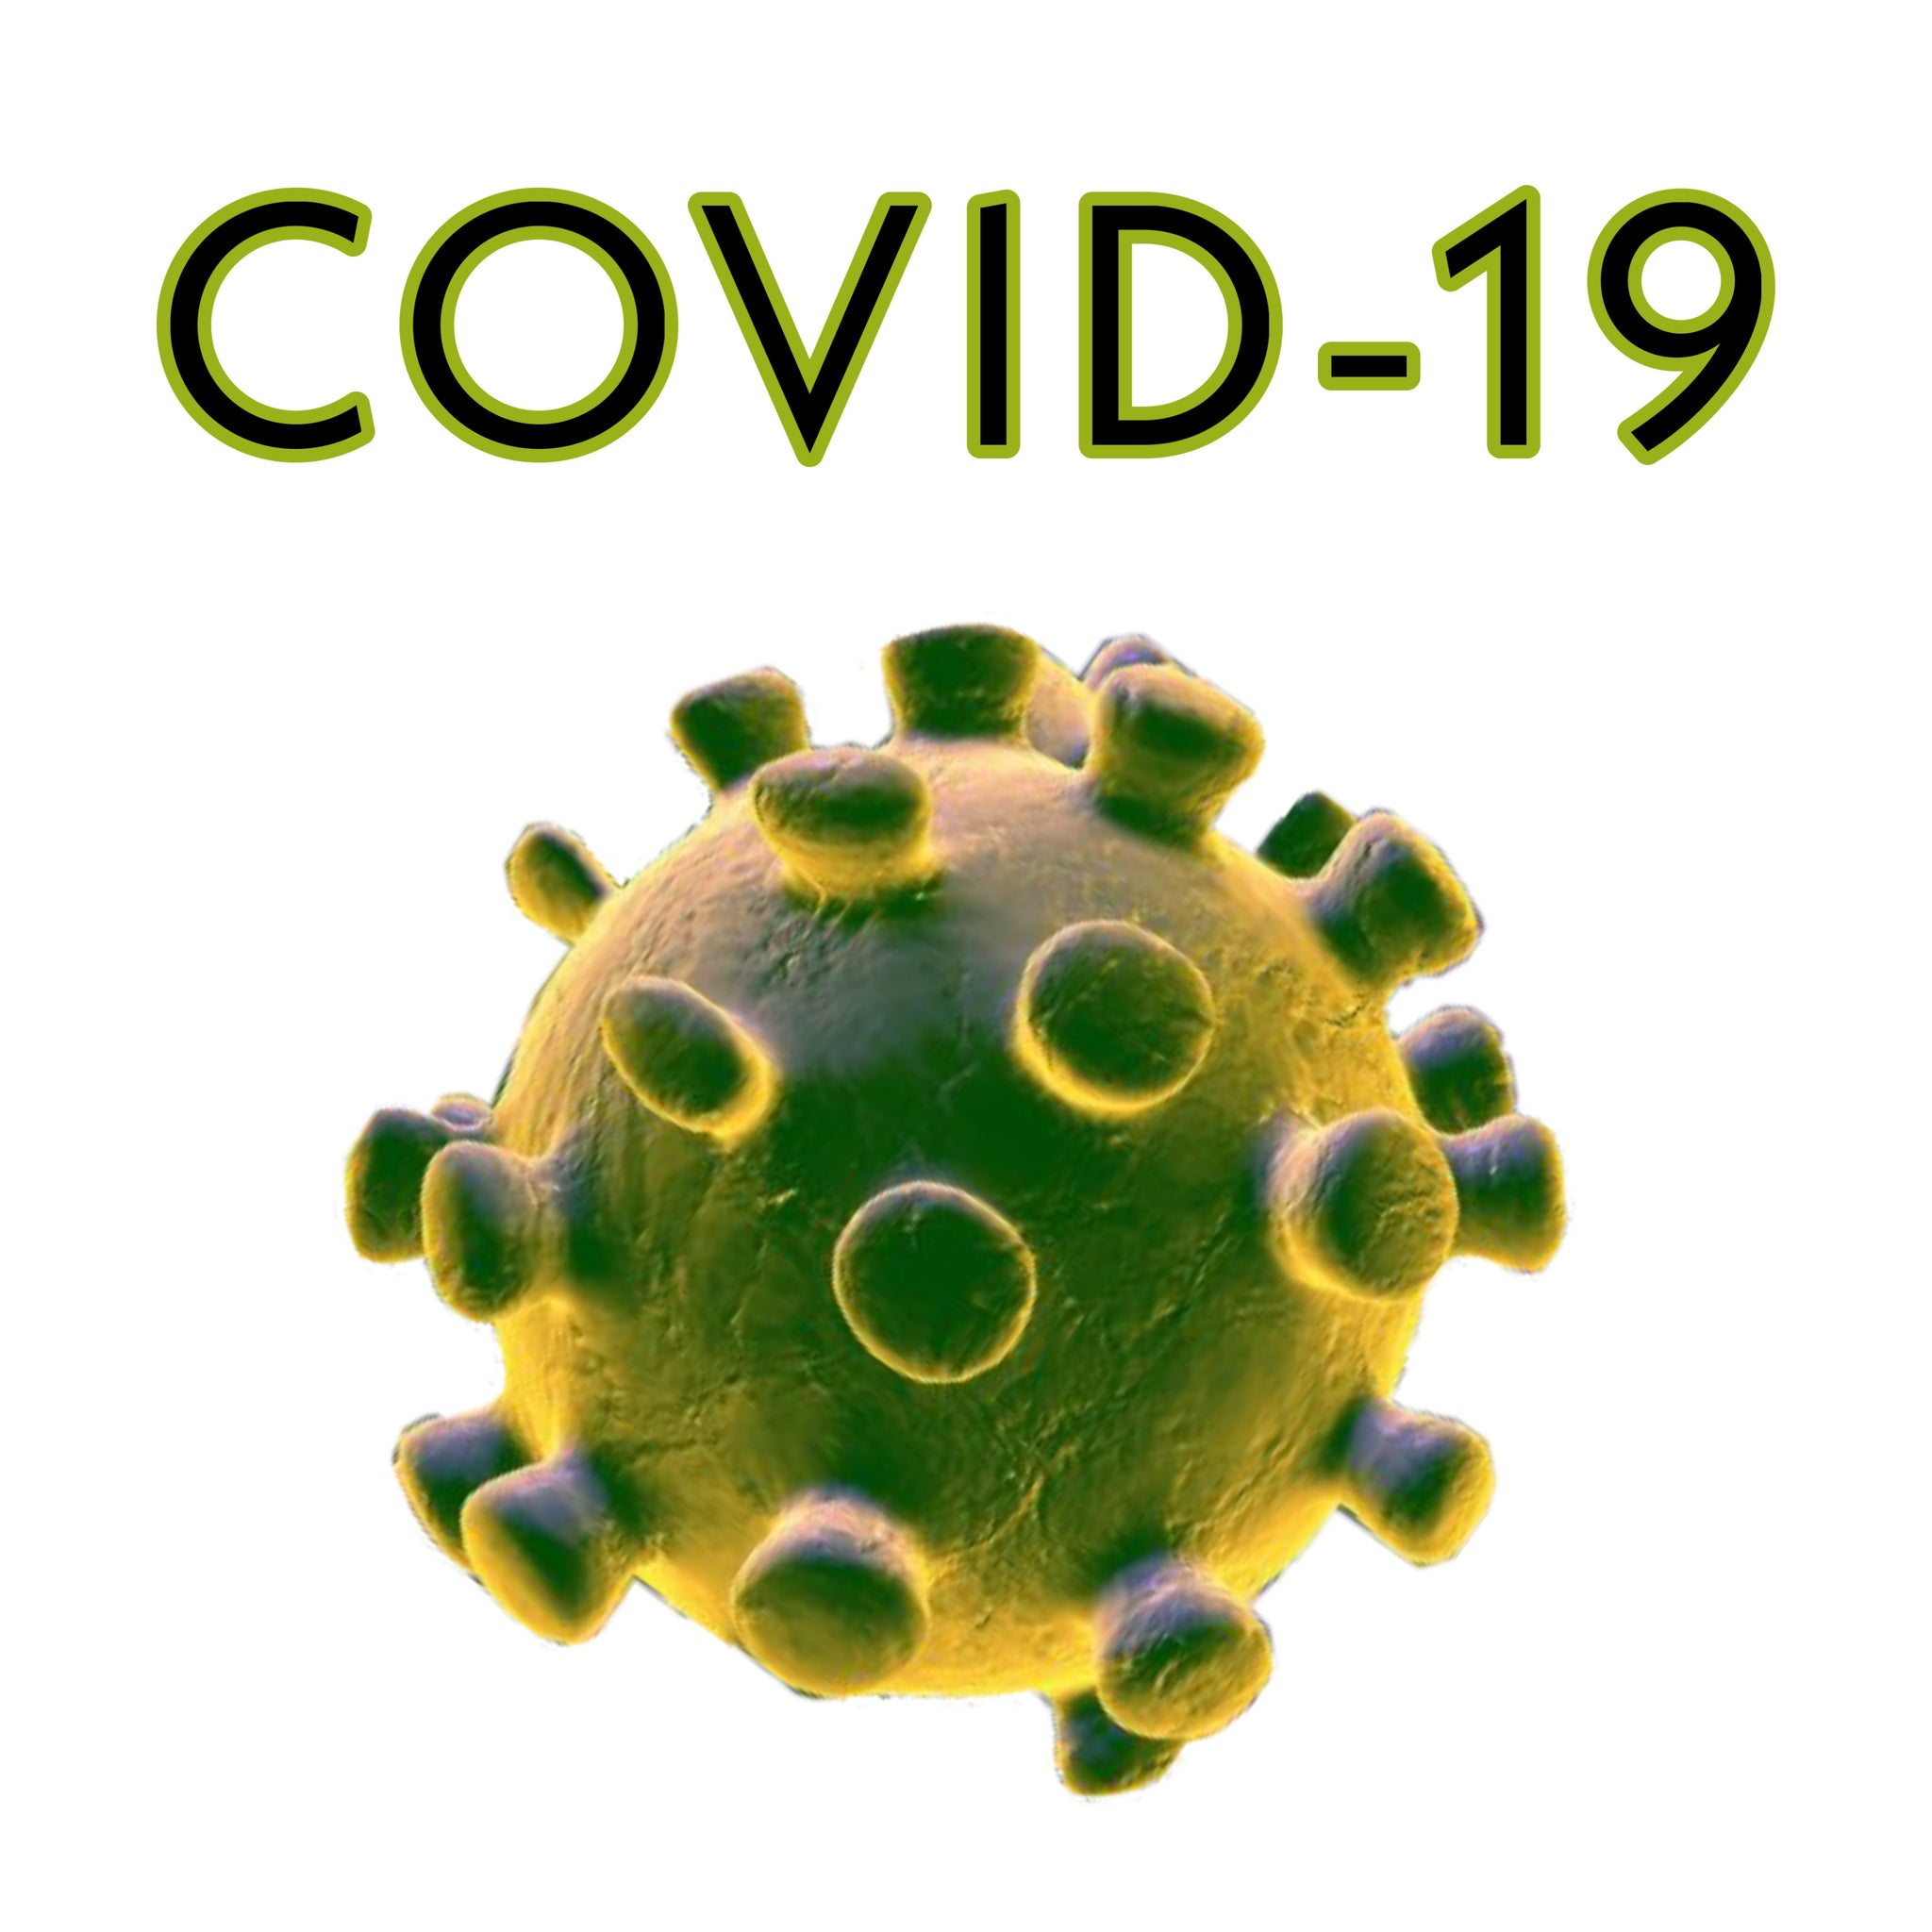 How To Naturally Protect Yourself During The Coronavirus Pandemic